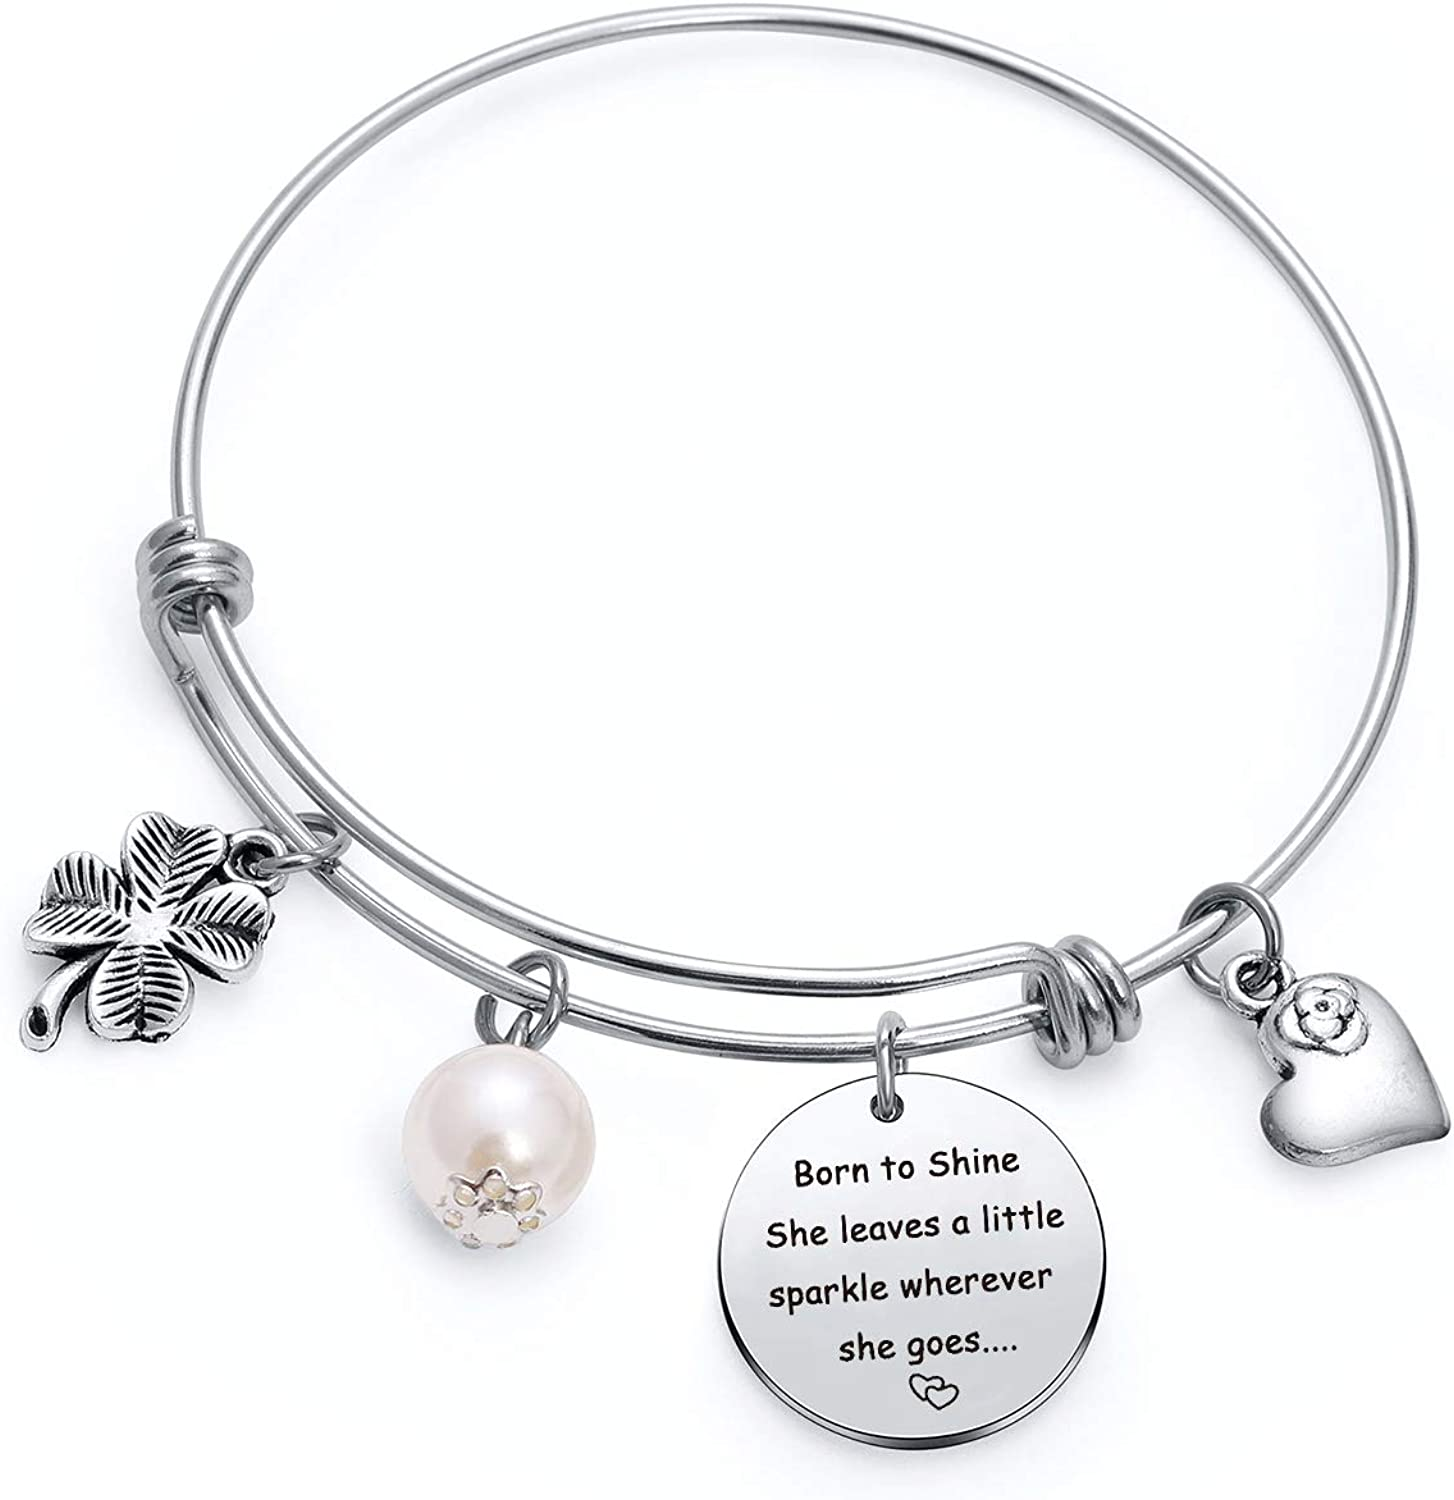 She leaves a little sparkle wherever she goes Inspirational Jewelry for Friends Daughter sister Bracelet